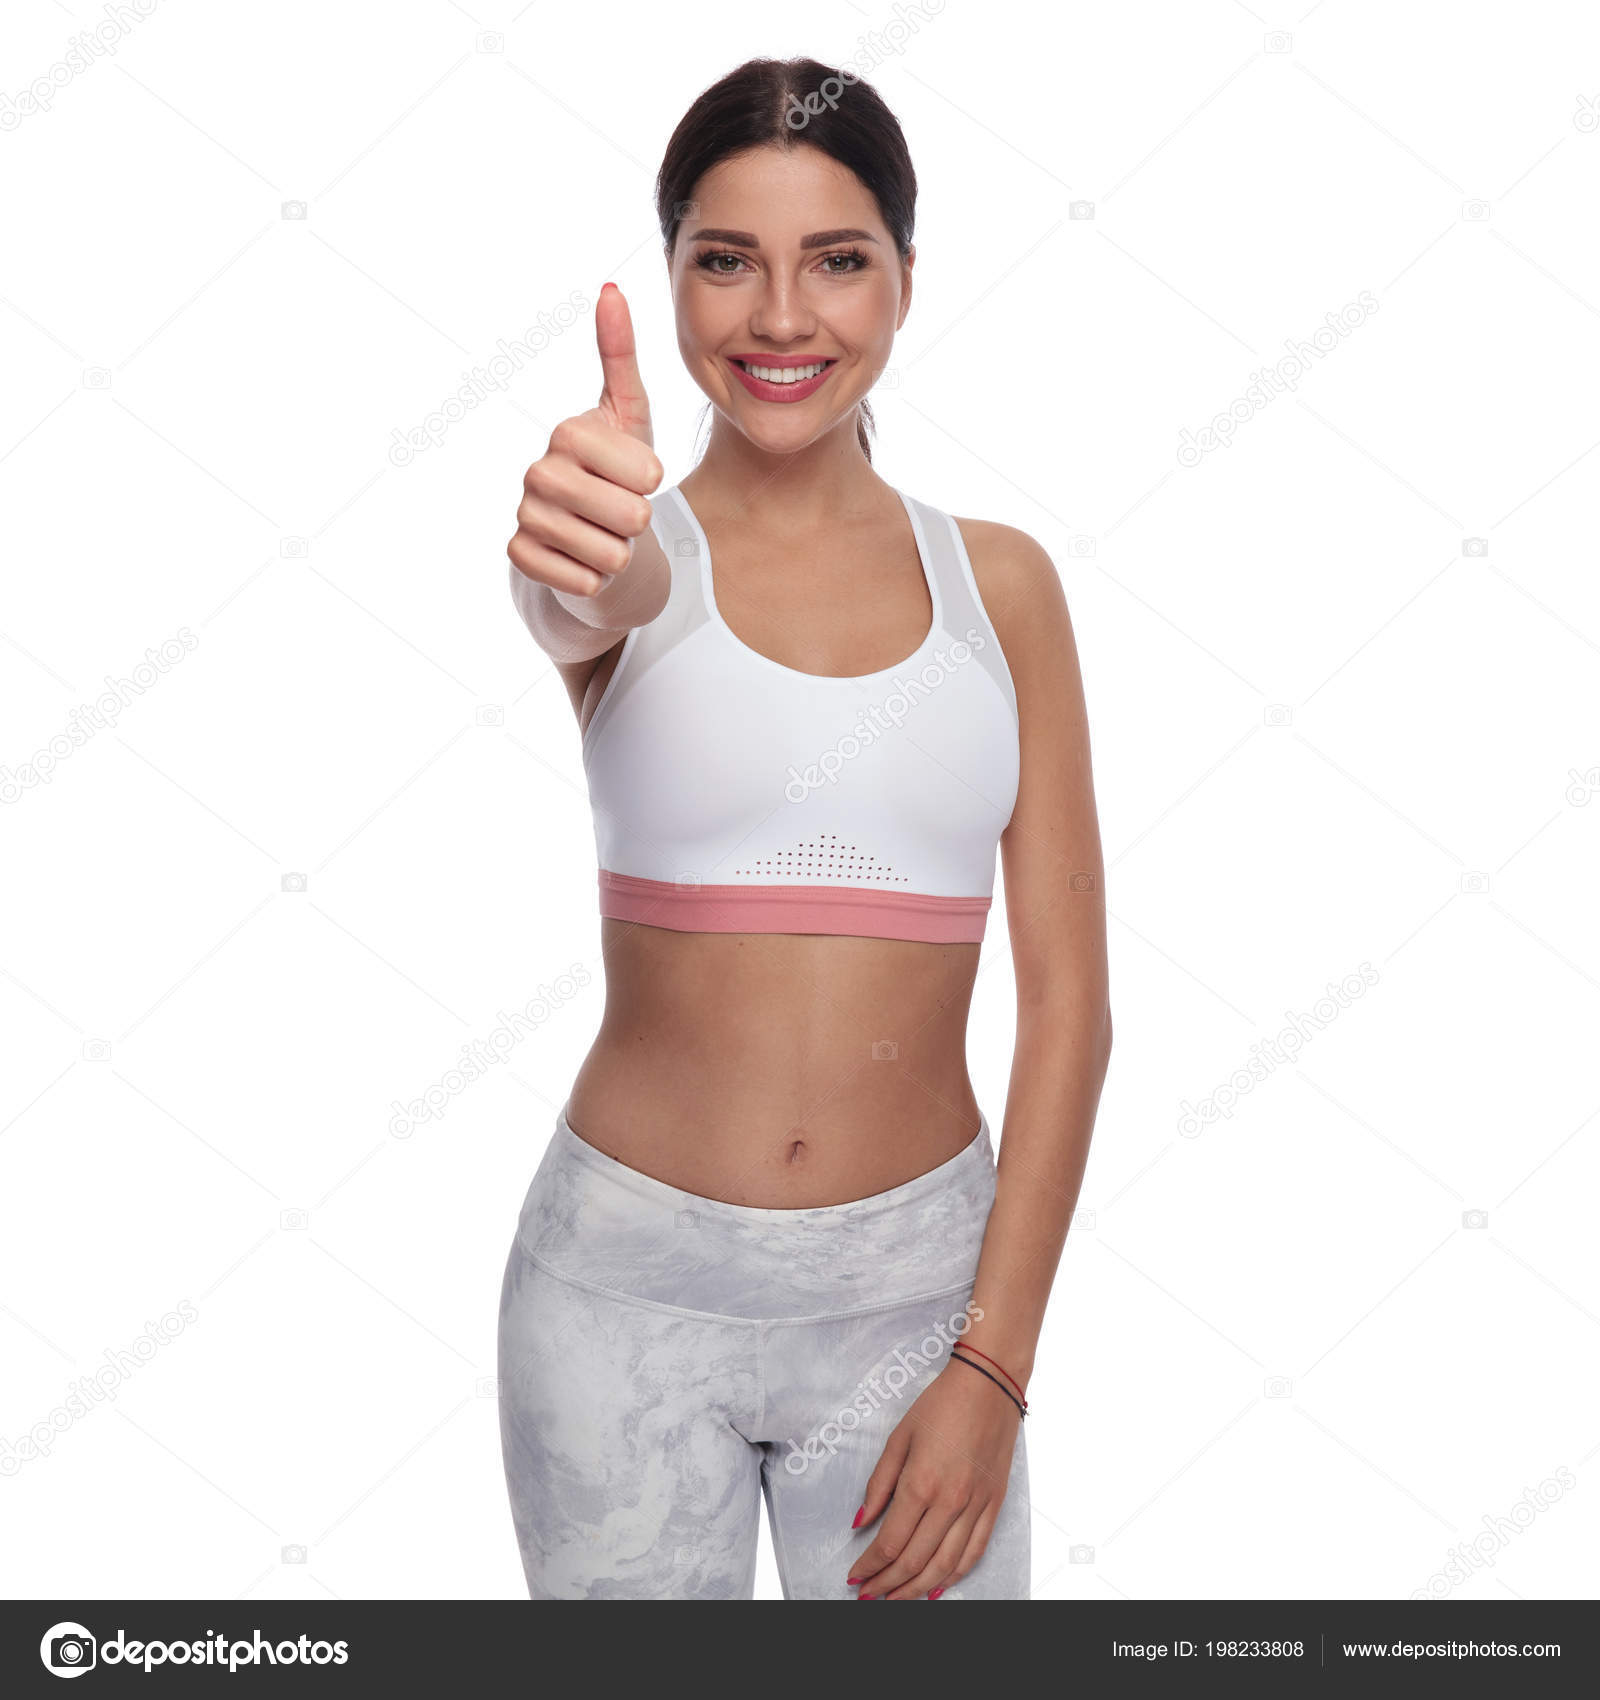 Portrait Smiling Fit Woman Making Thumbs Sign While Standing